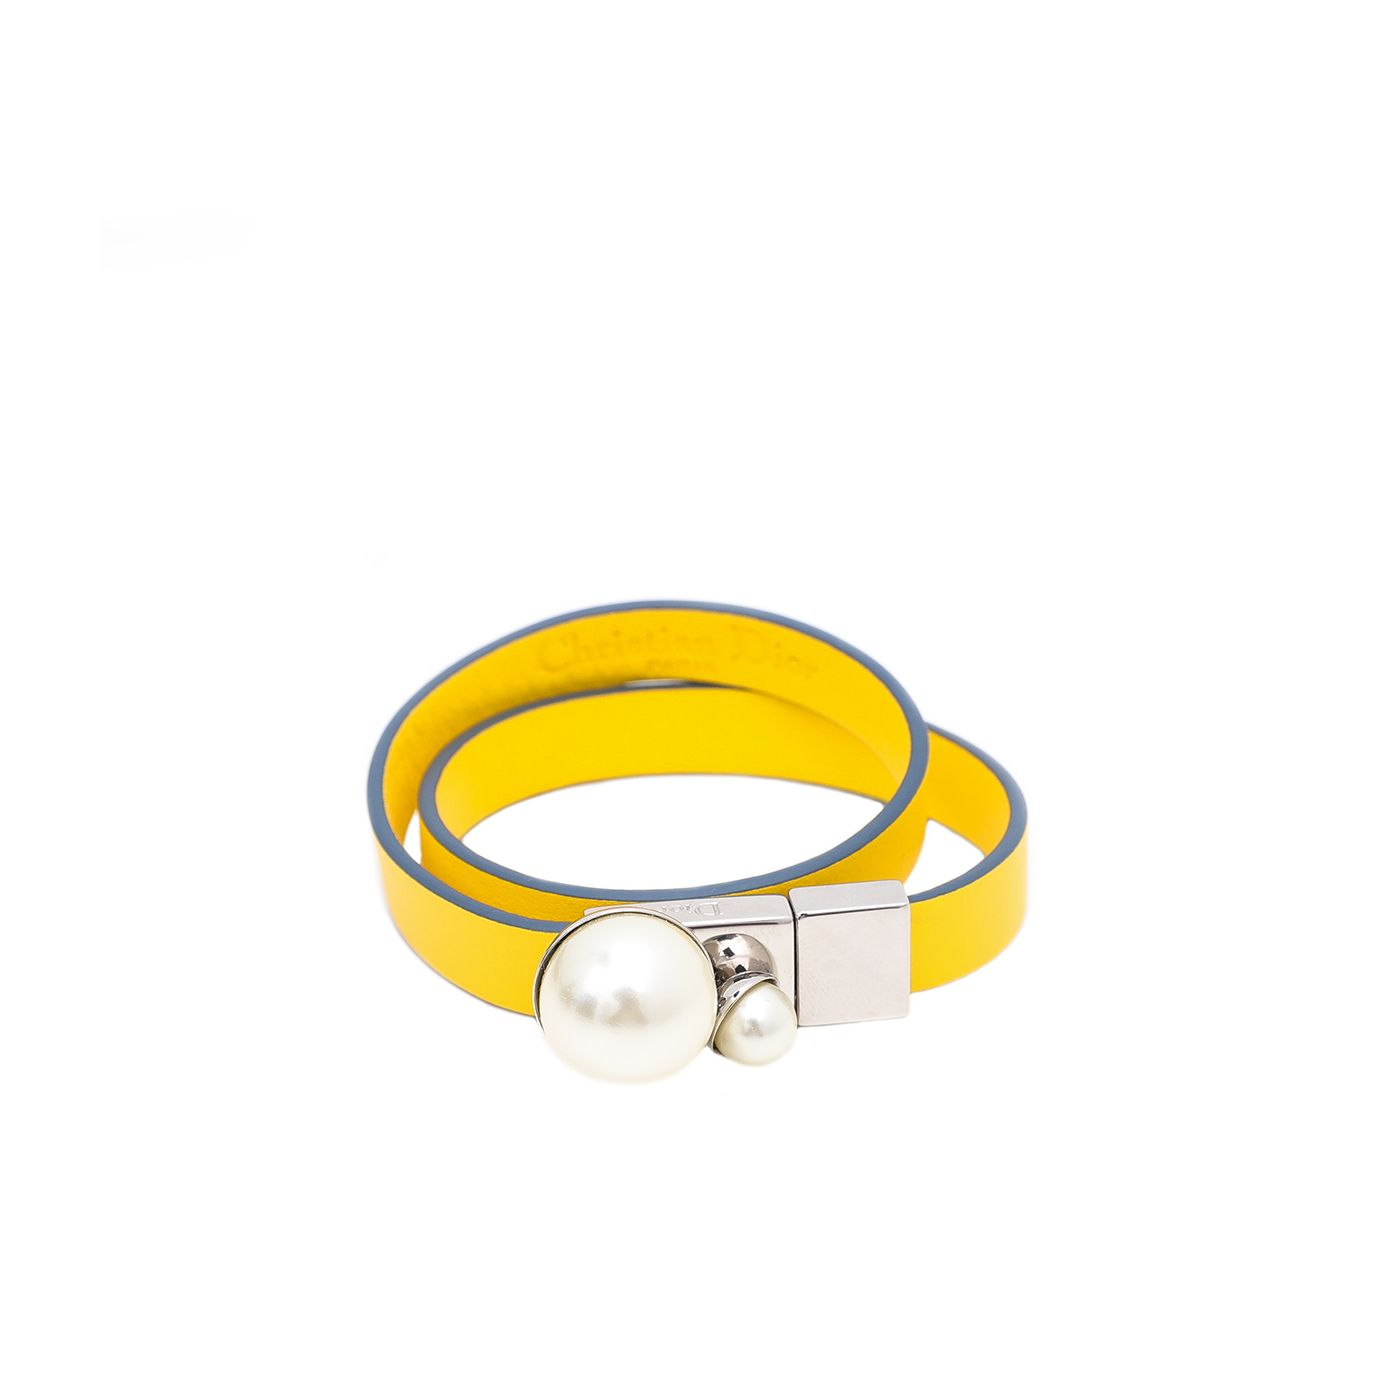 Christian Dior Yellow with Pearl Small Bracelet